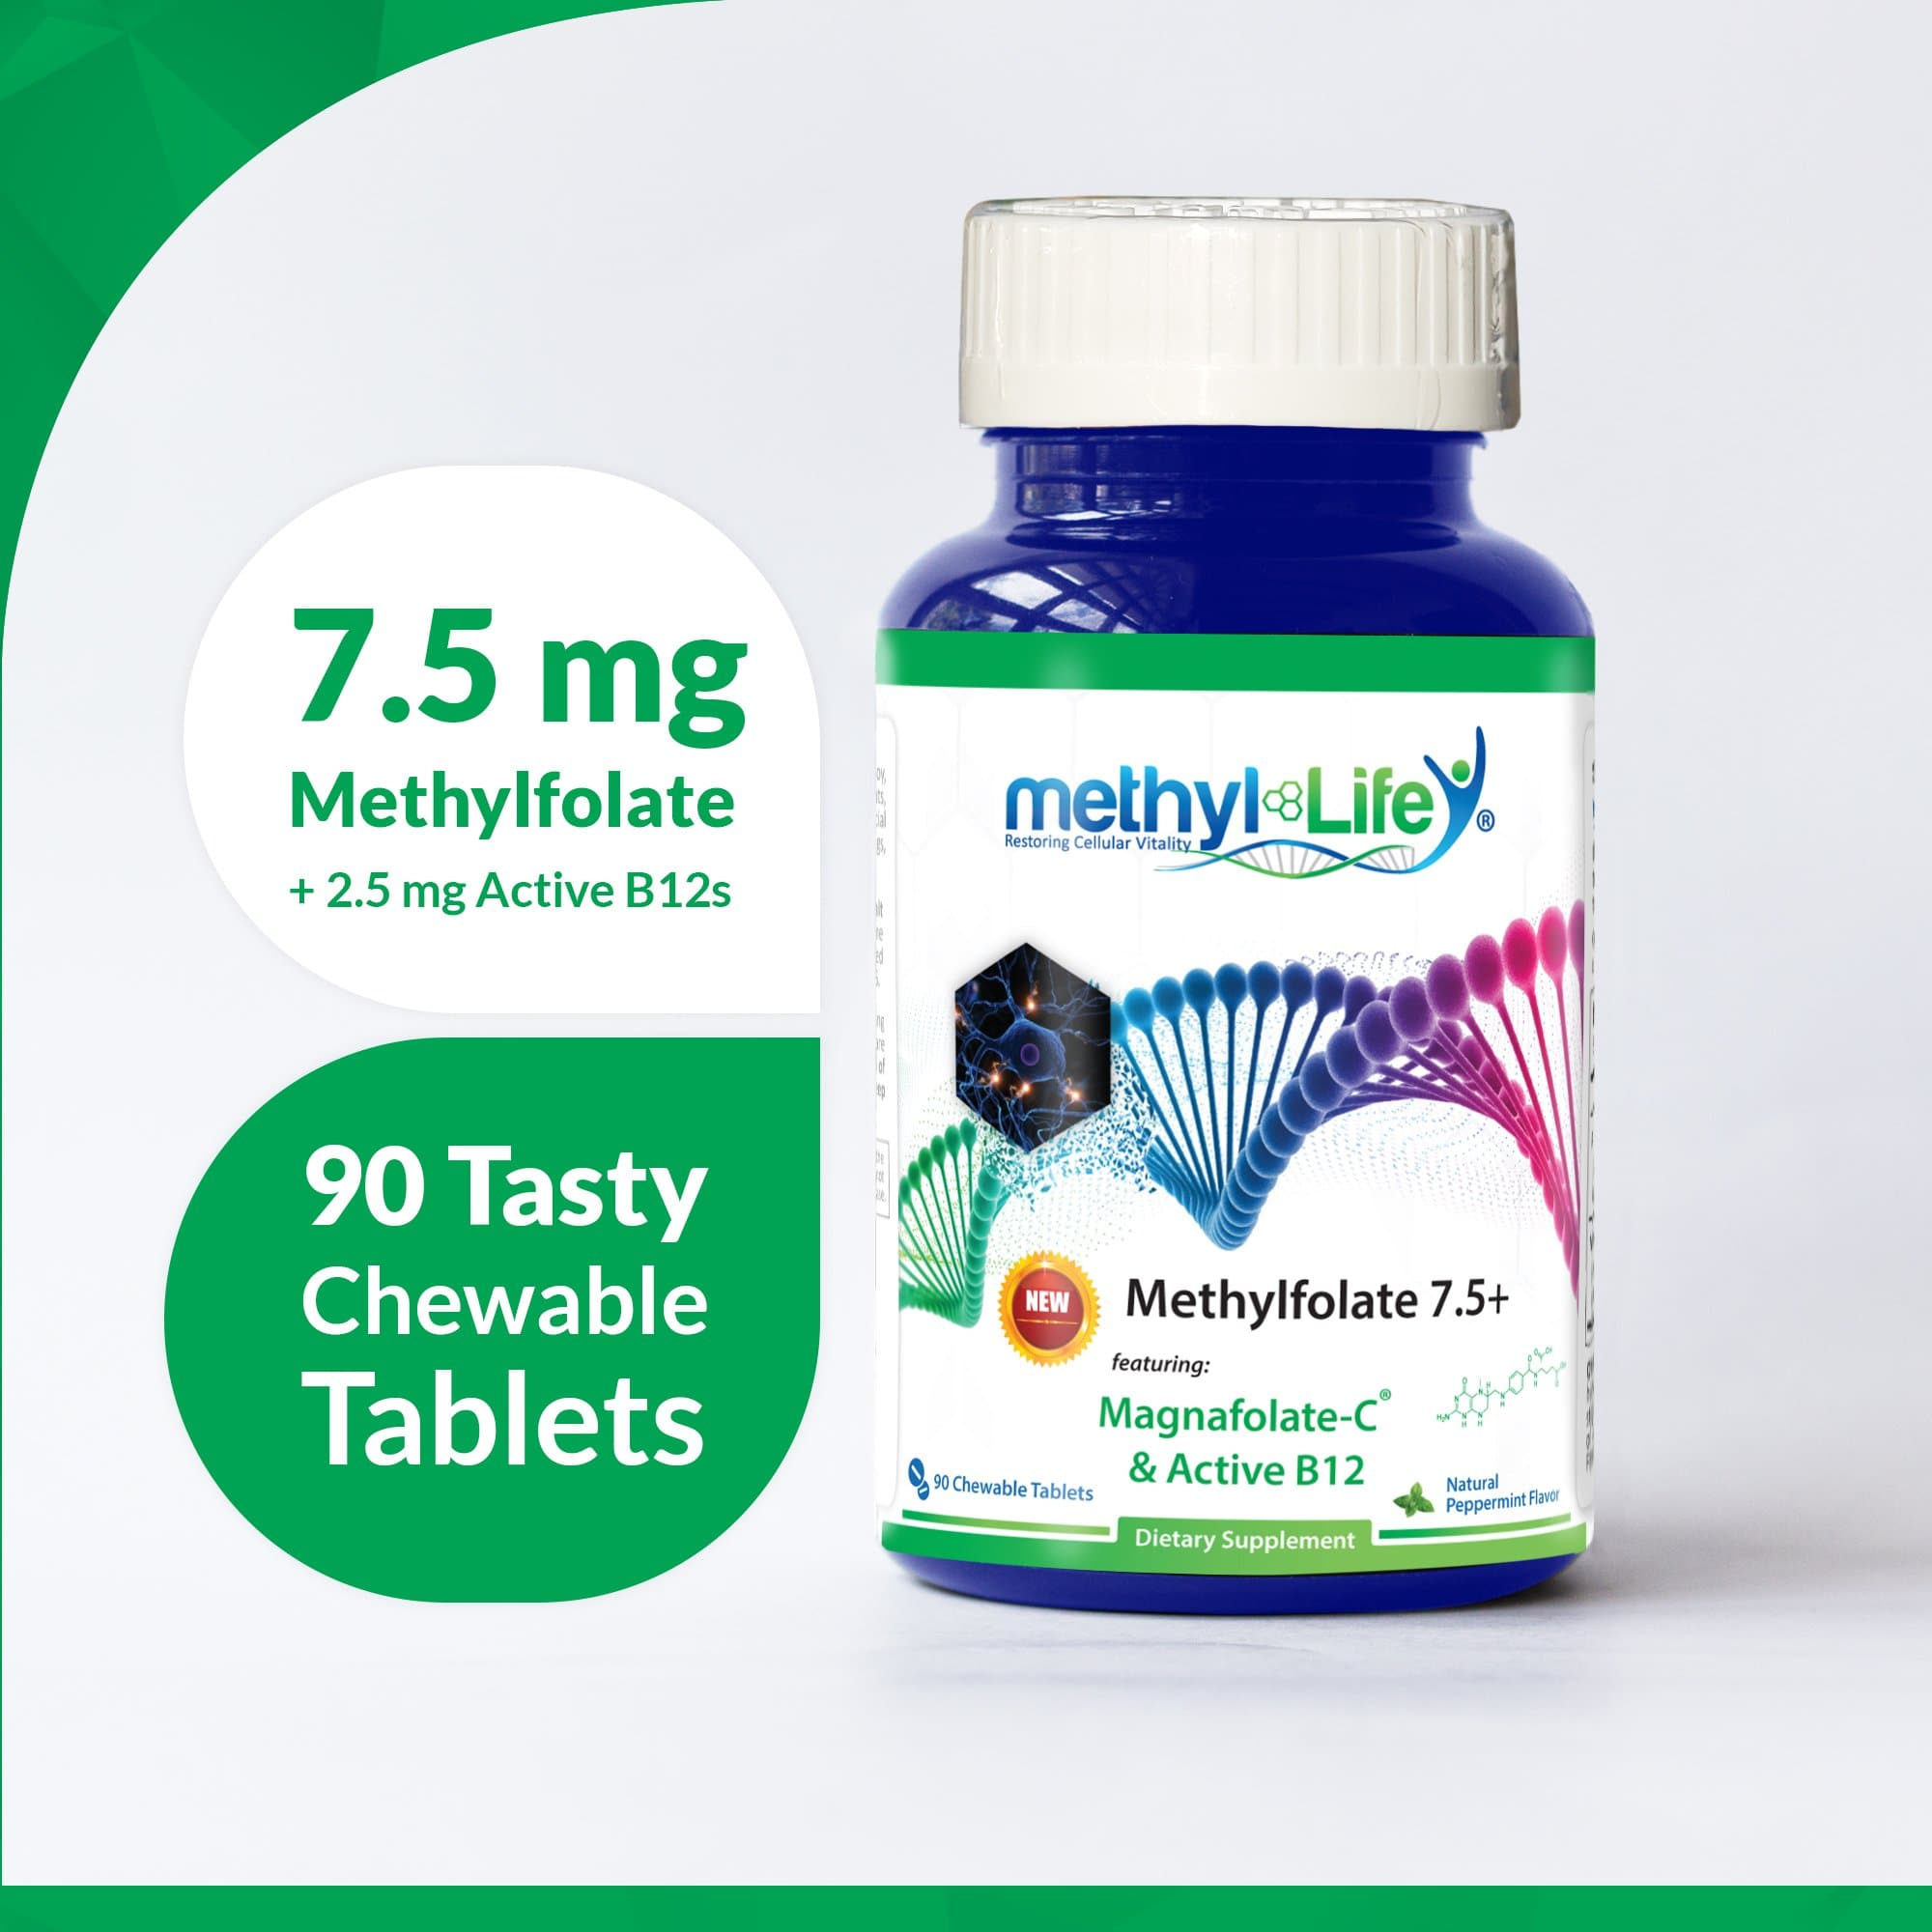 Methylfolate 7.5+ - L-Methylfolate + Active B12s - 90 Chewables